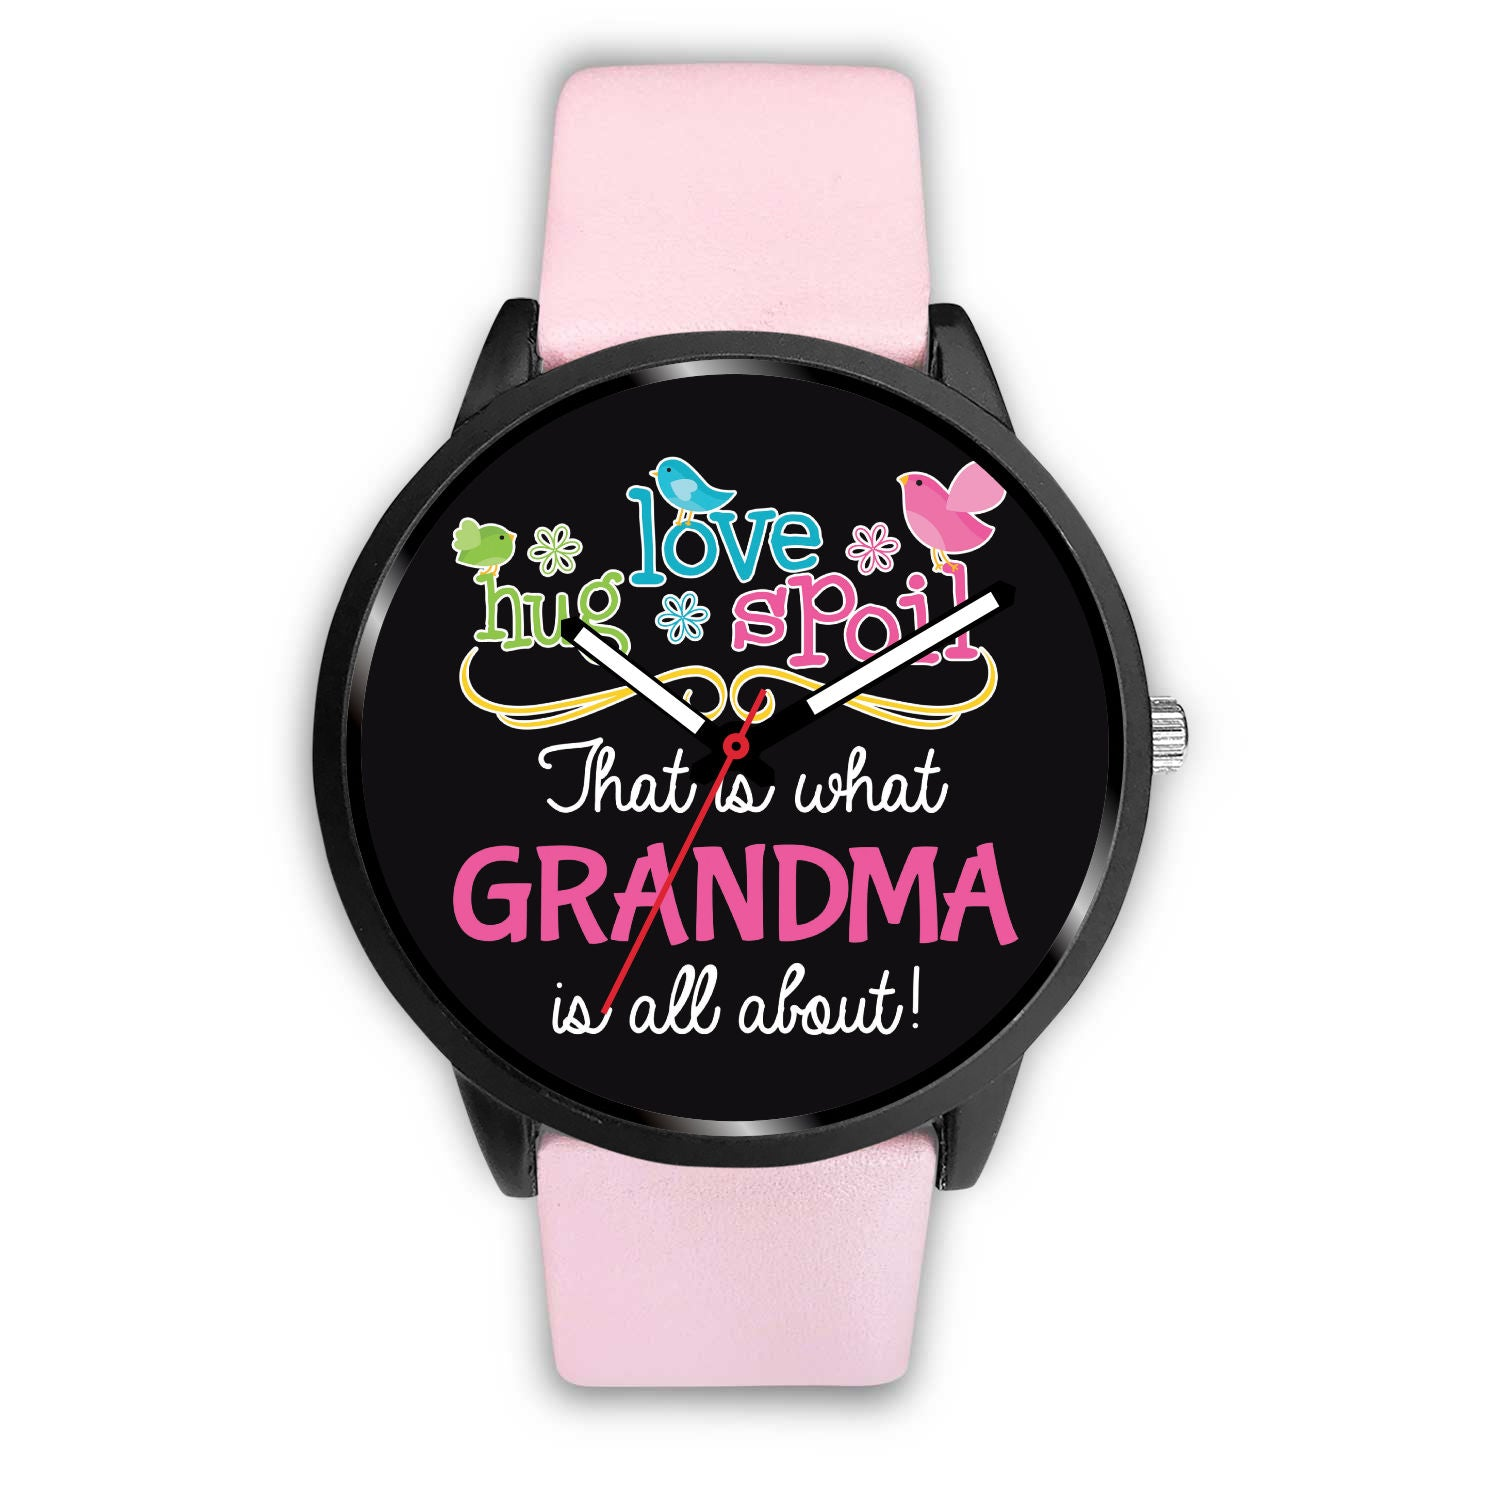 Love Hug Spoil Pink Women's Watch